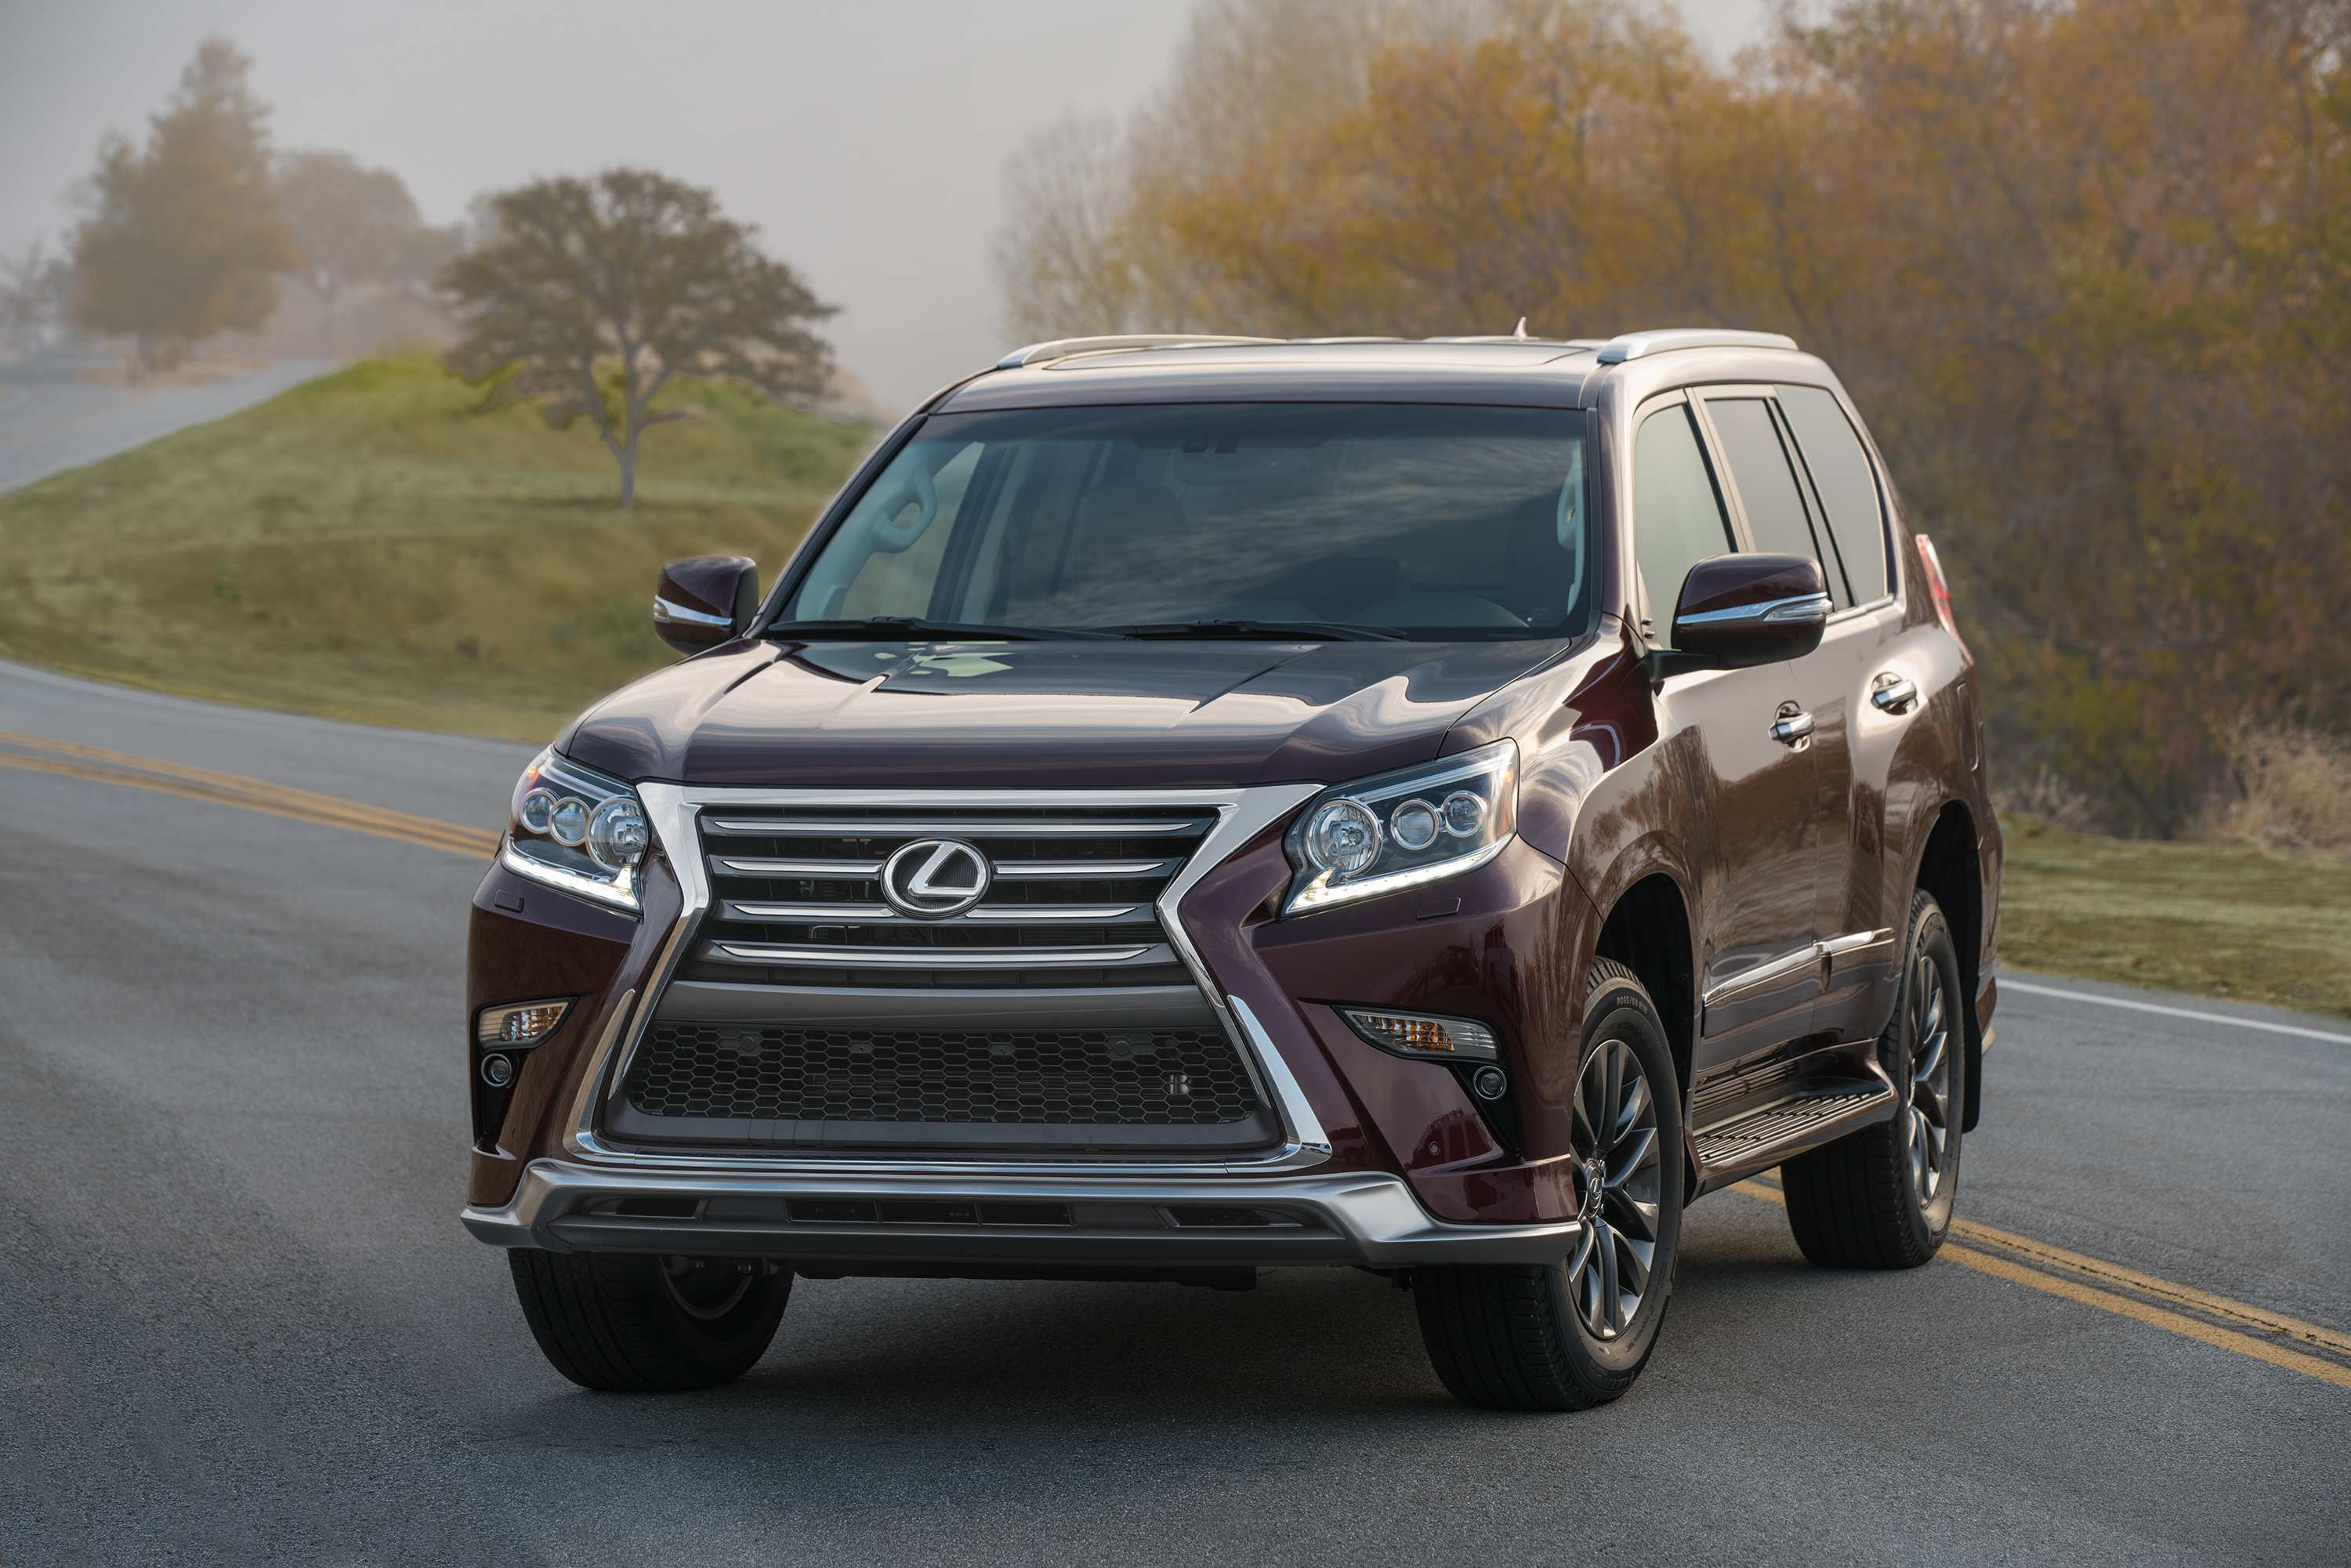 45 All New 2019 Lexus 460 Research New